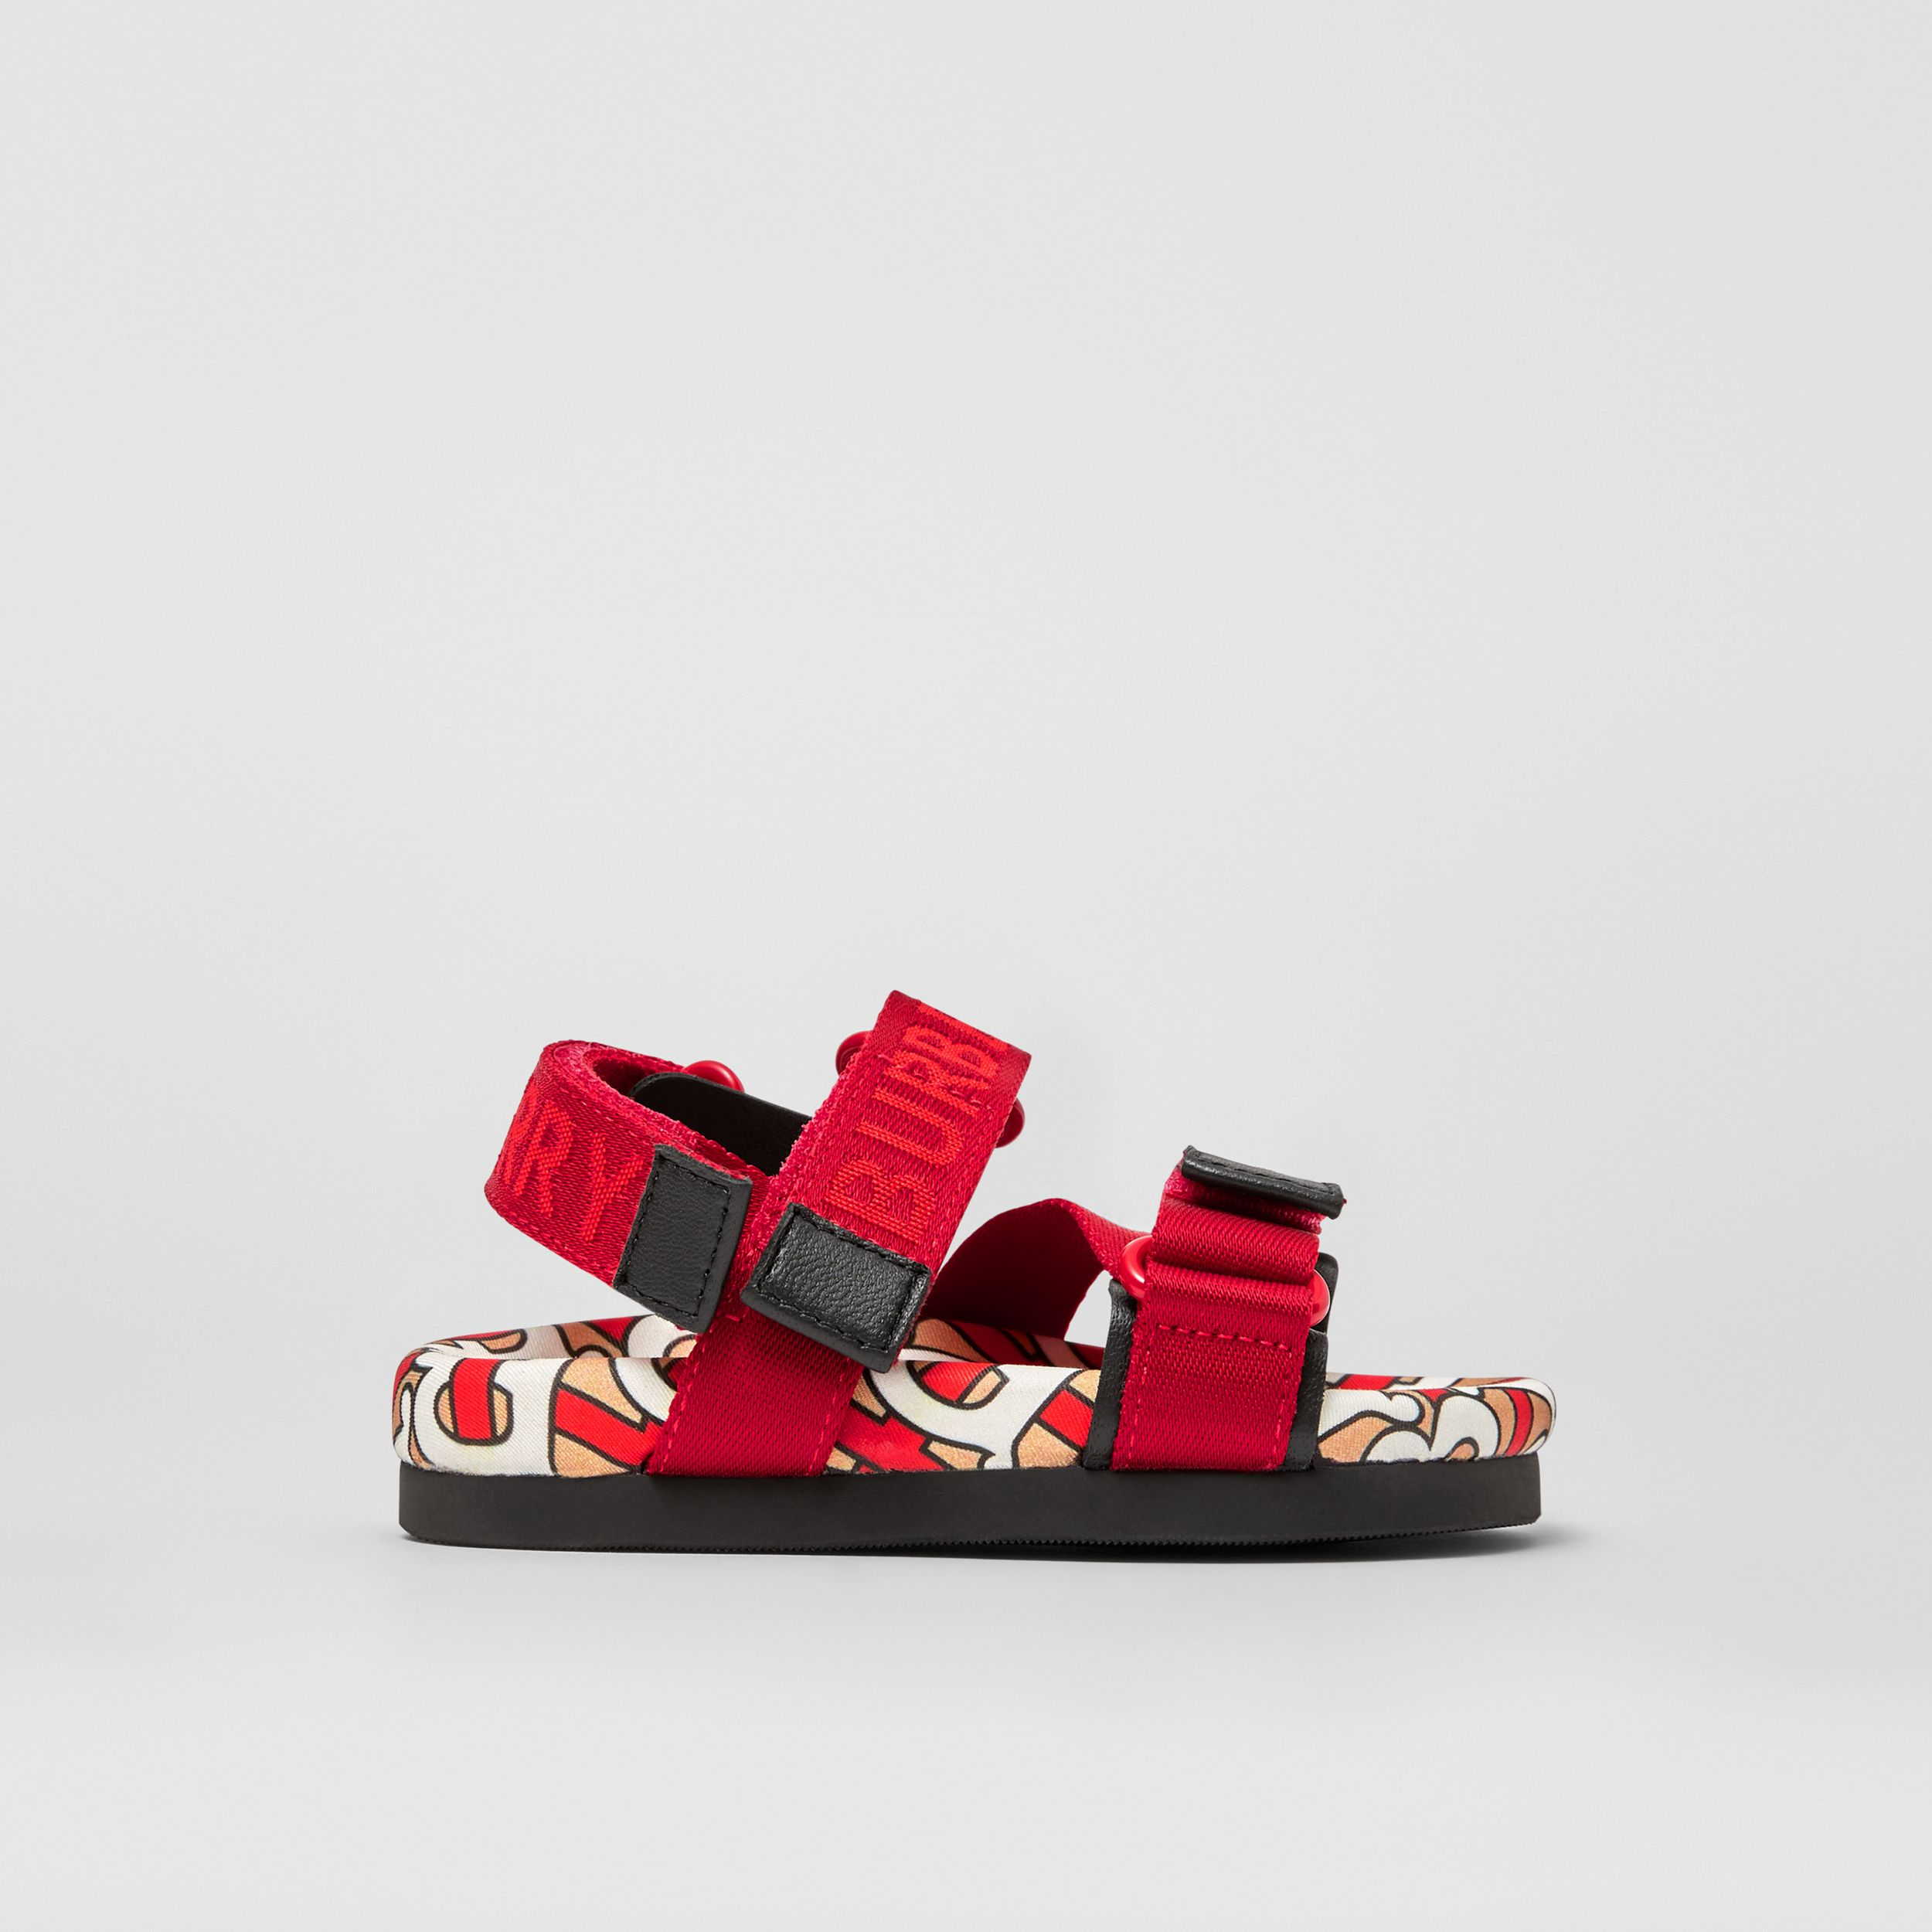 Monogram Print Cotton Gabardine Sandals in Bright Red - Children | Burberry - 4